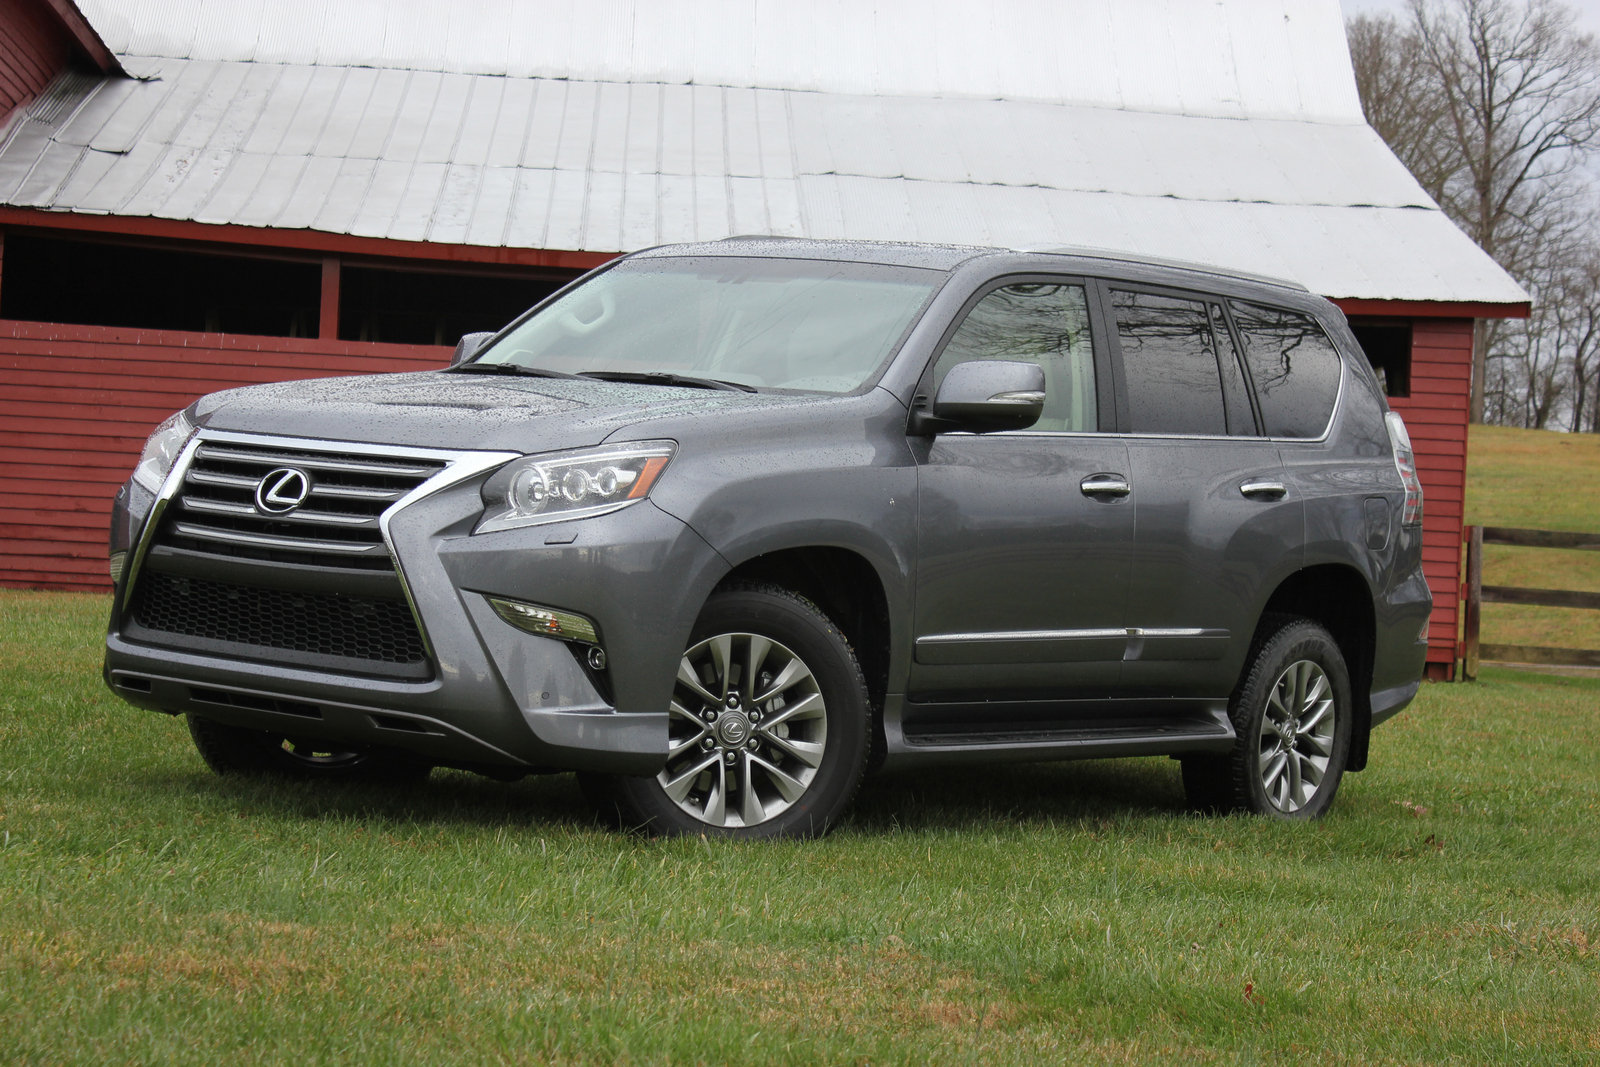 2015 lexus gx 460 driven picture 608258 car review top speed. Black Bedroom Furniture Sets. Home Design Ideas